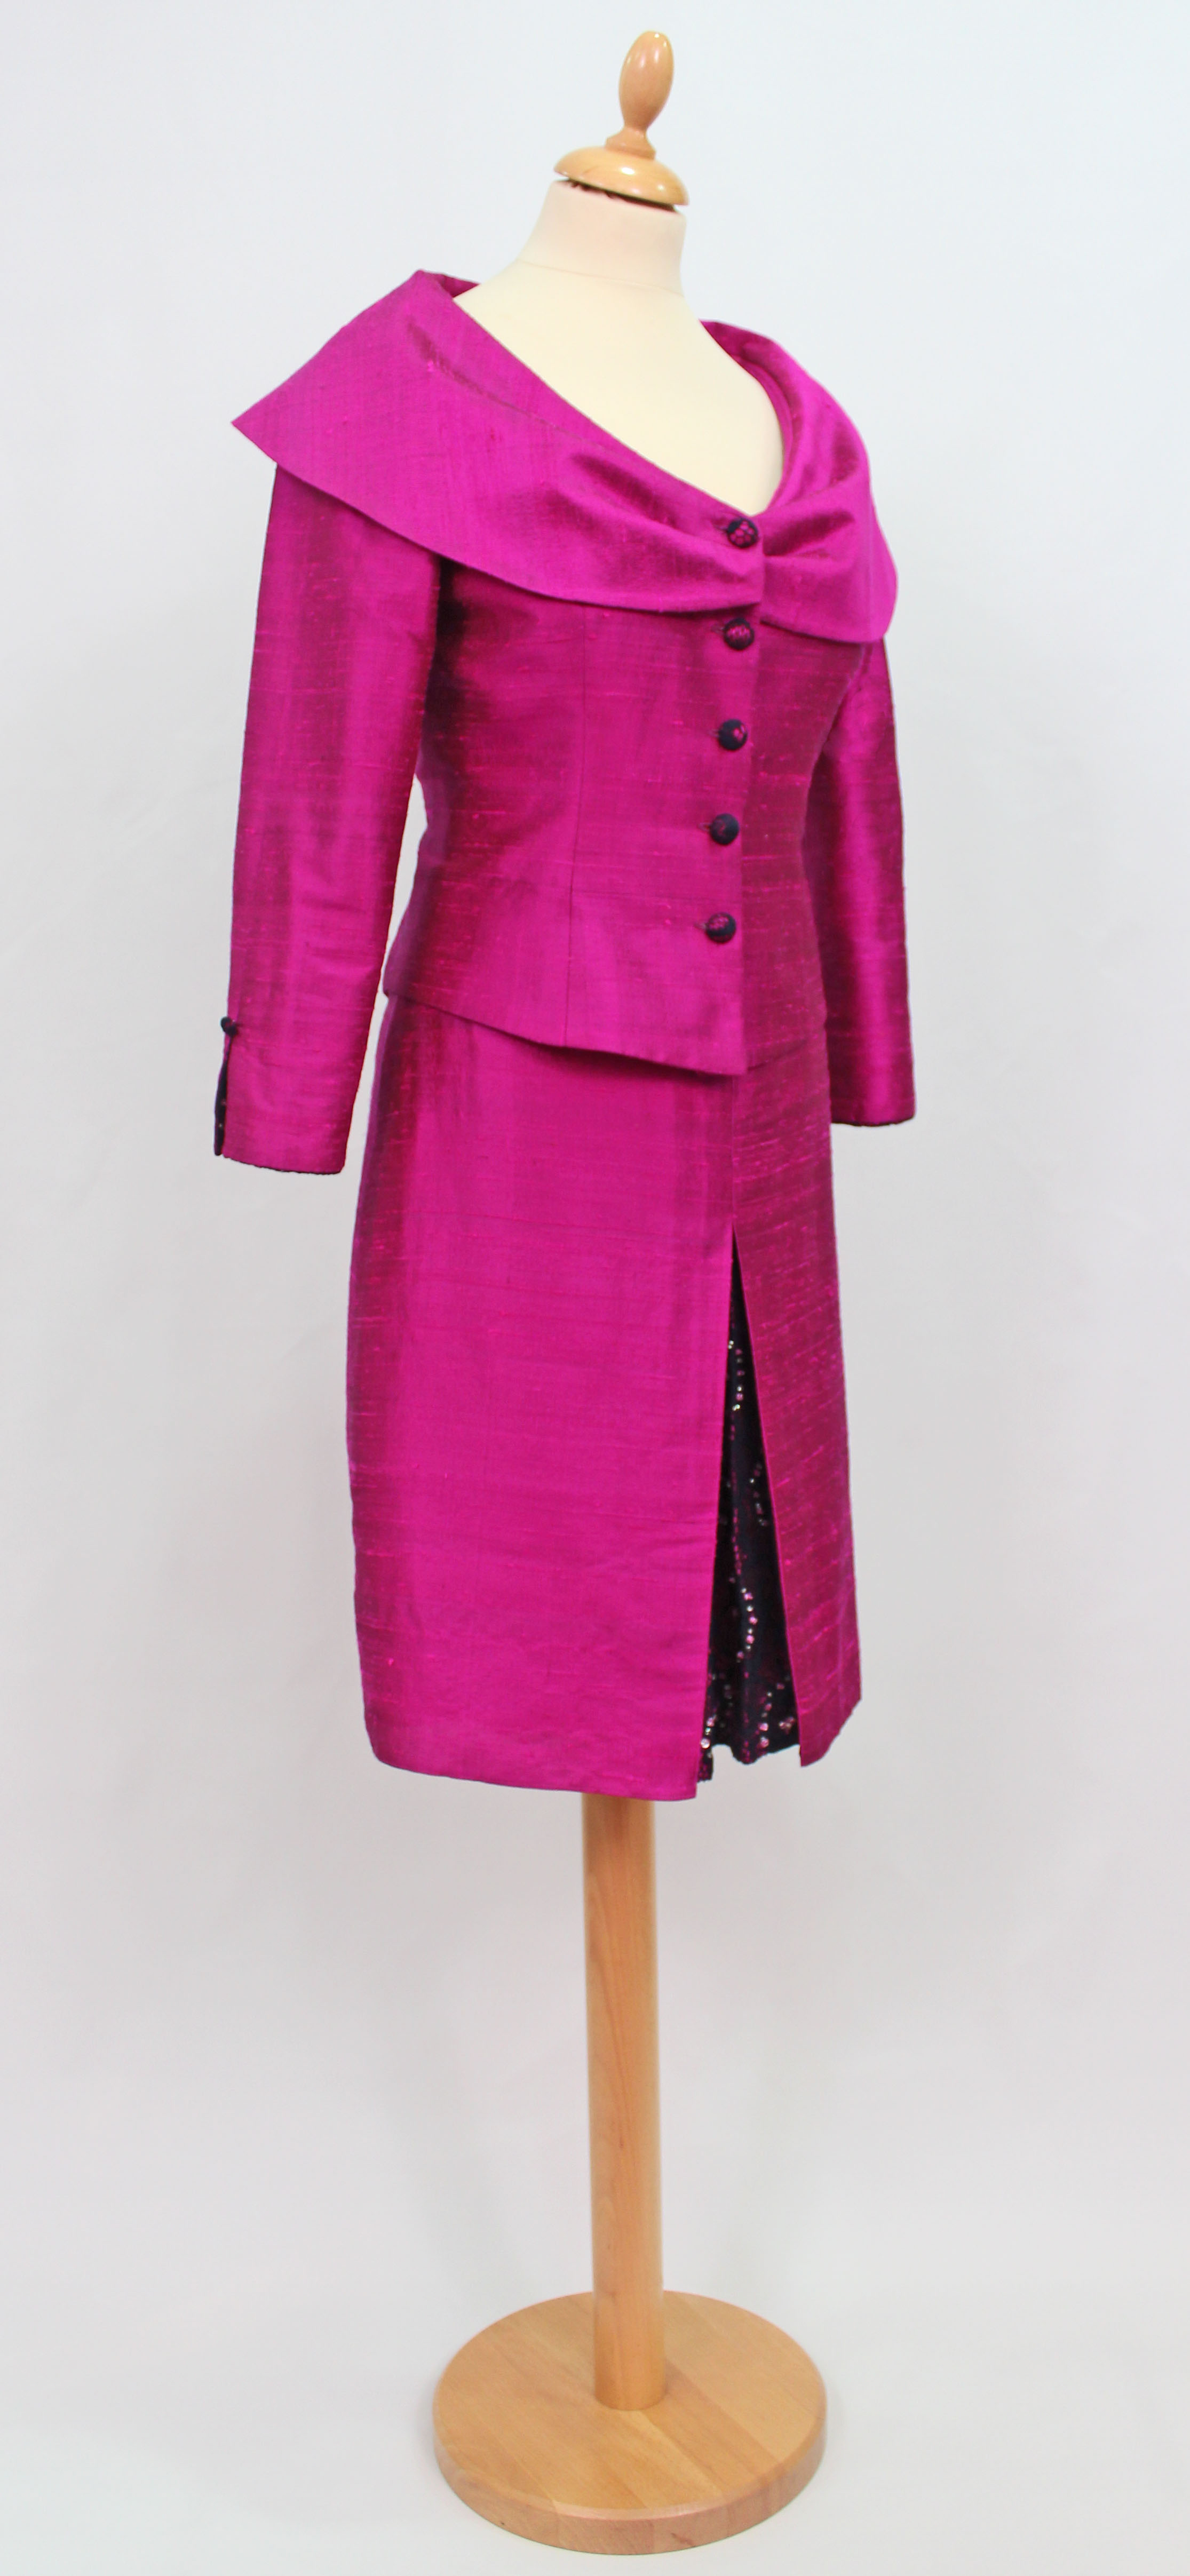 Tailleur Pink Ladie Courte